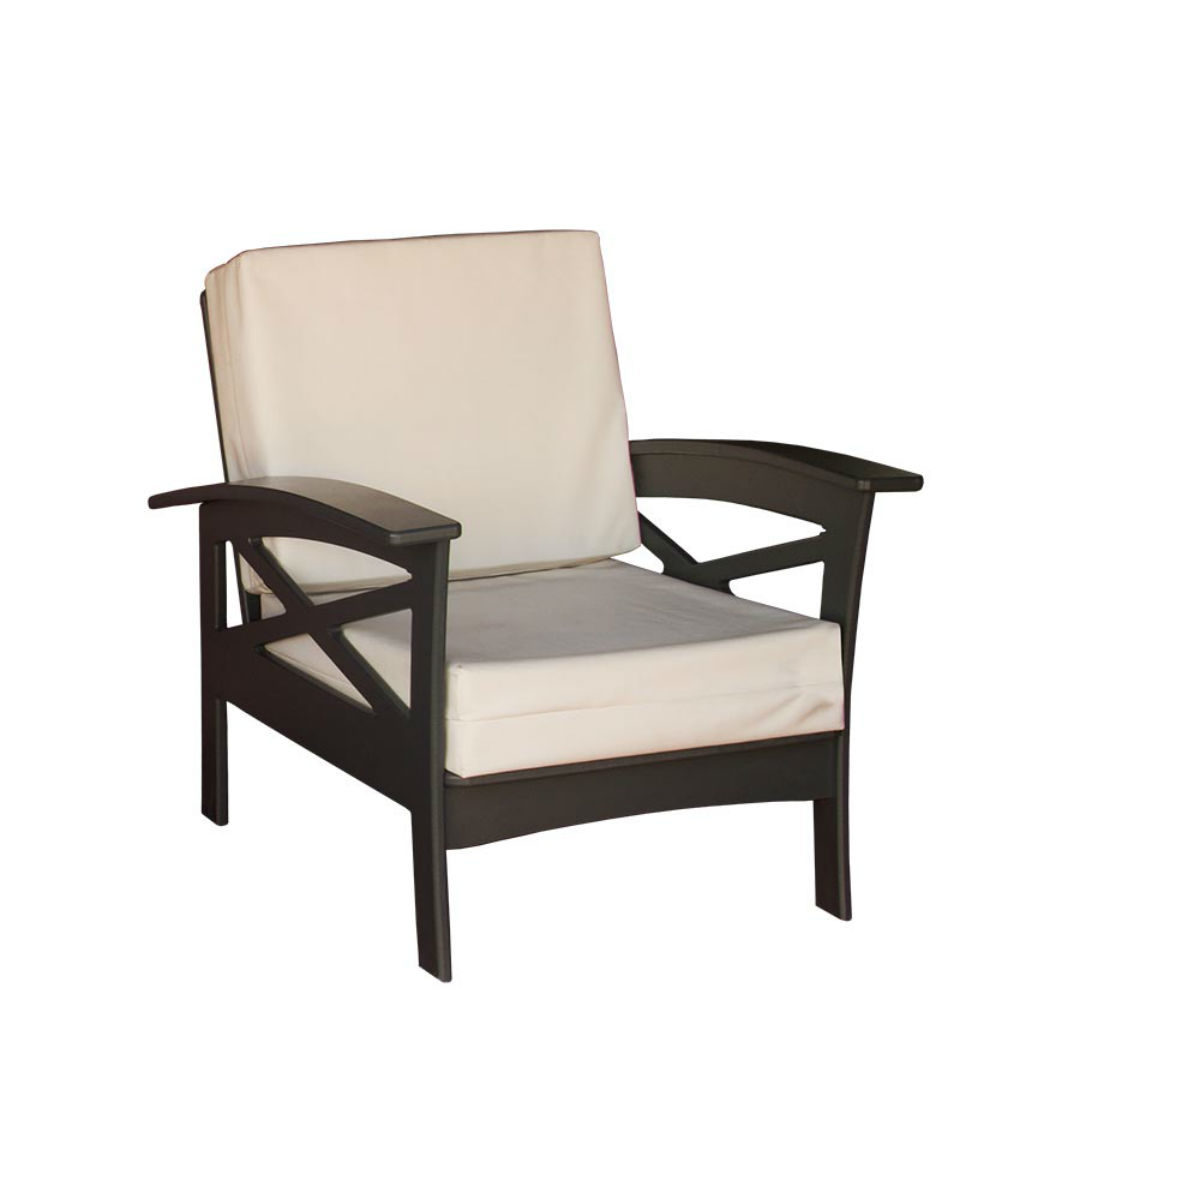 Deep Seat Chair - Chocolate Brown